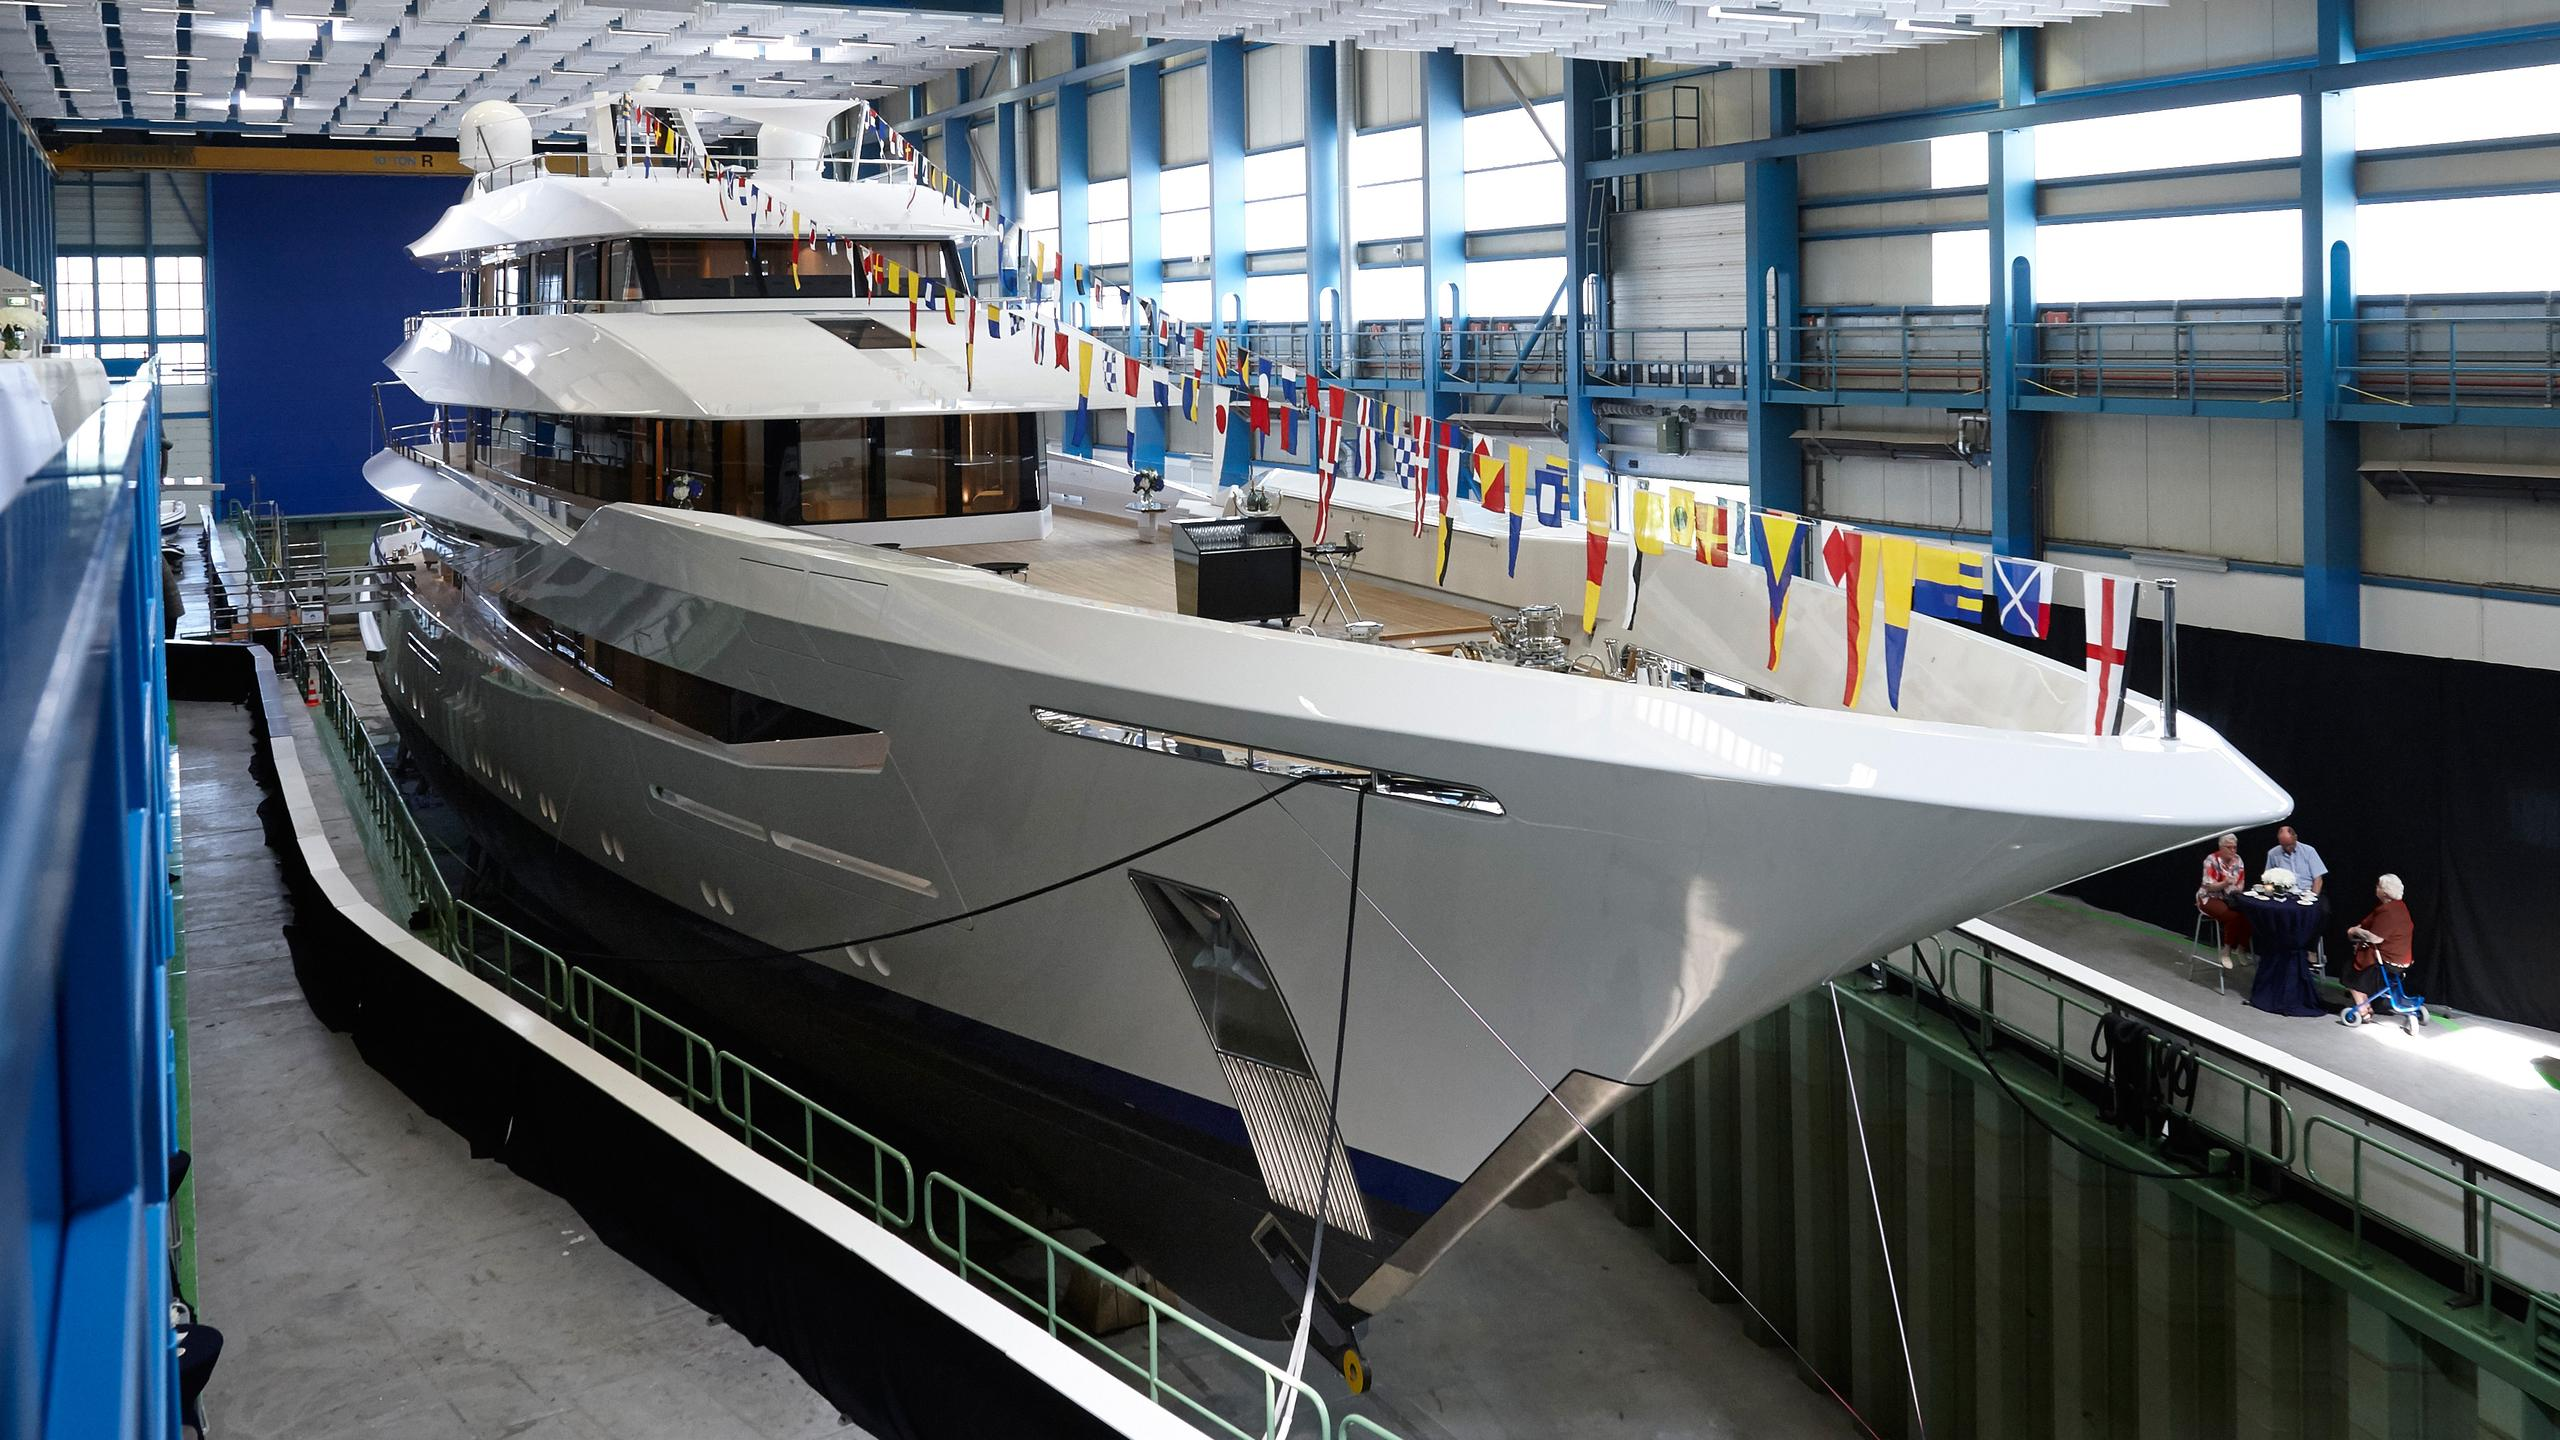 joy-motor-yacht-feadship-2016-70m-shipyard-shed-bow